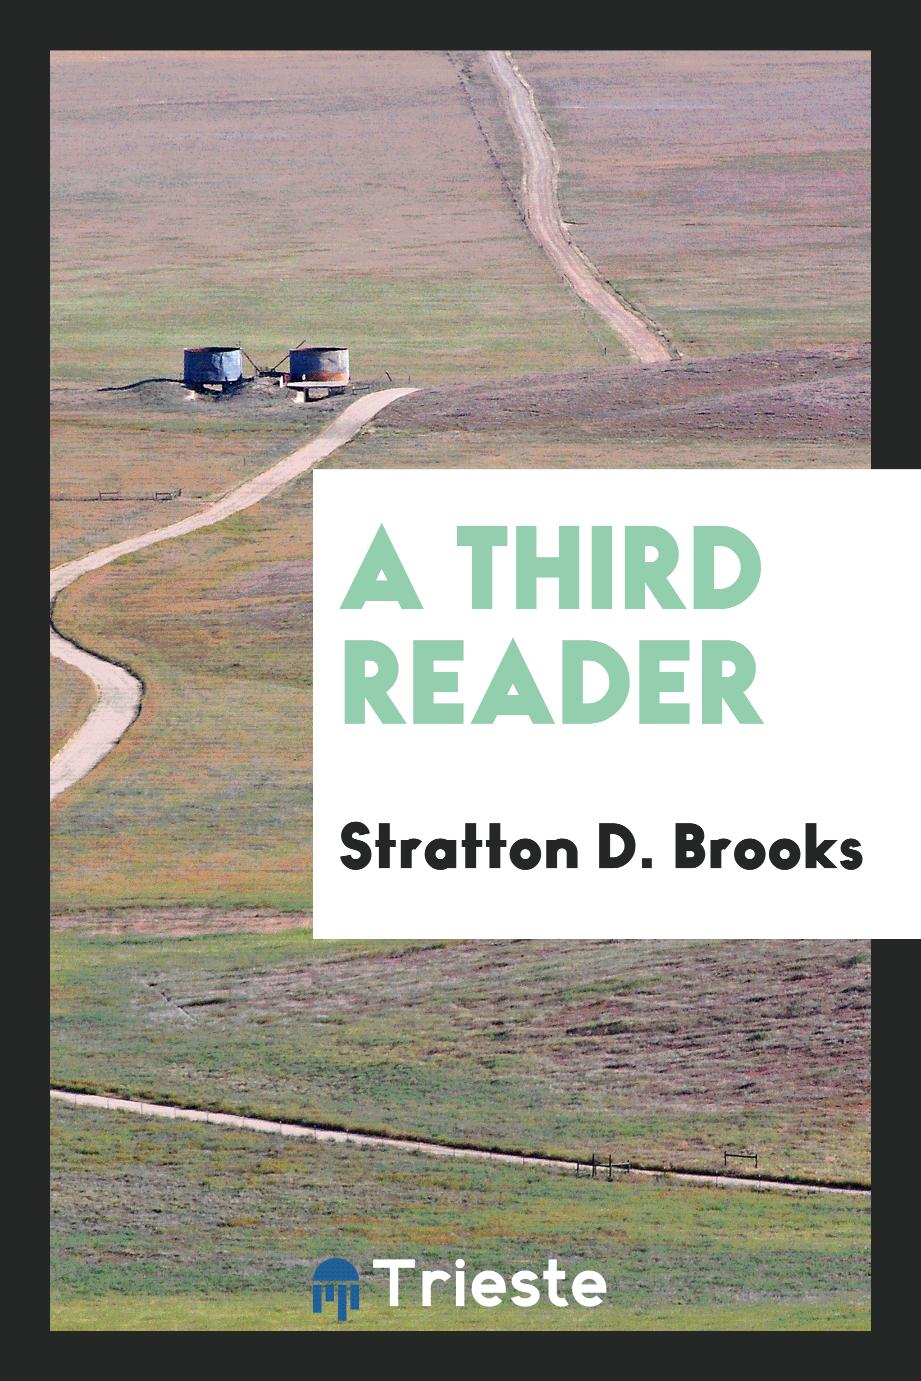 Stratton D. Brooks - A third reader